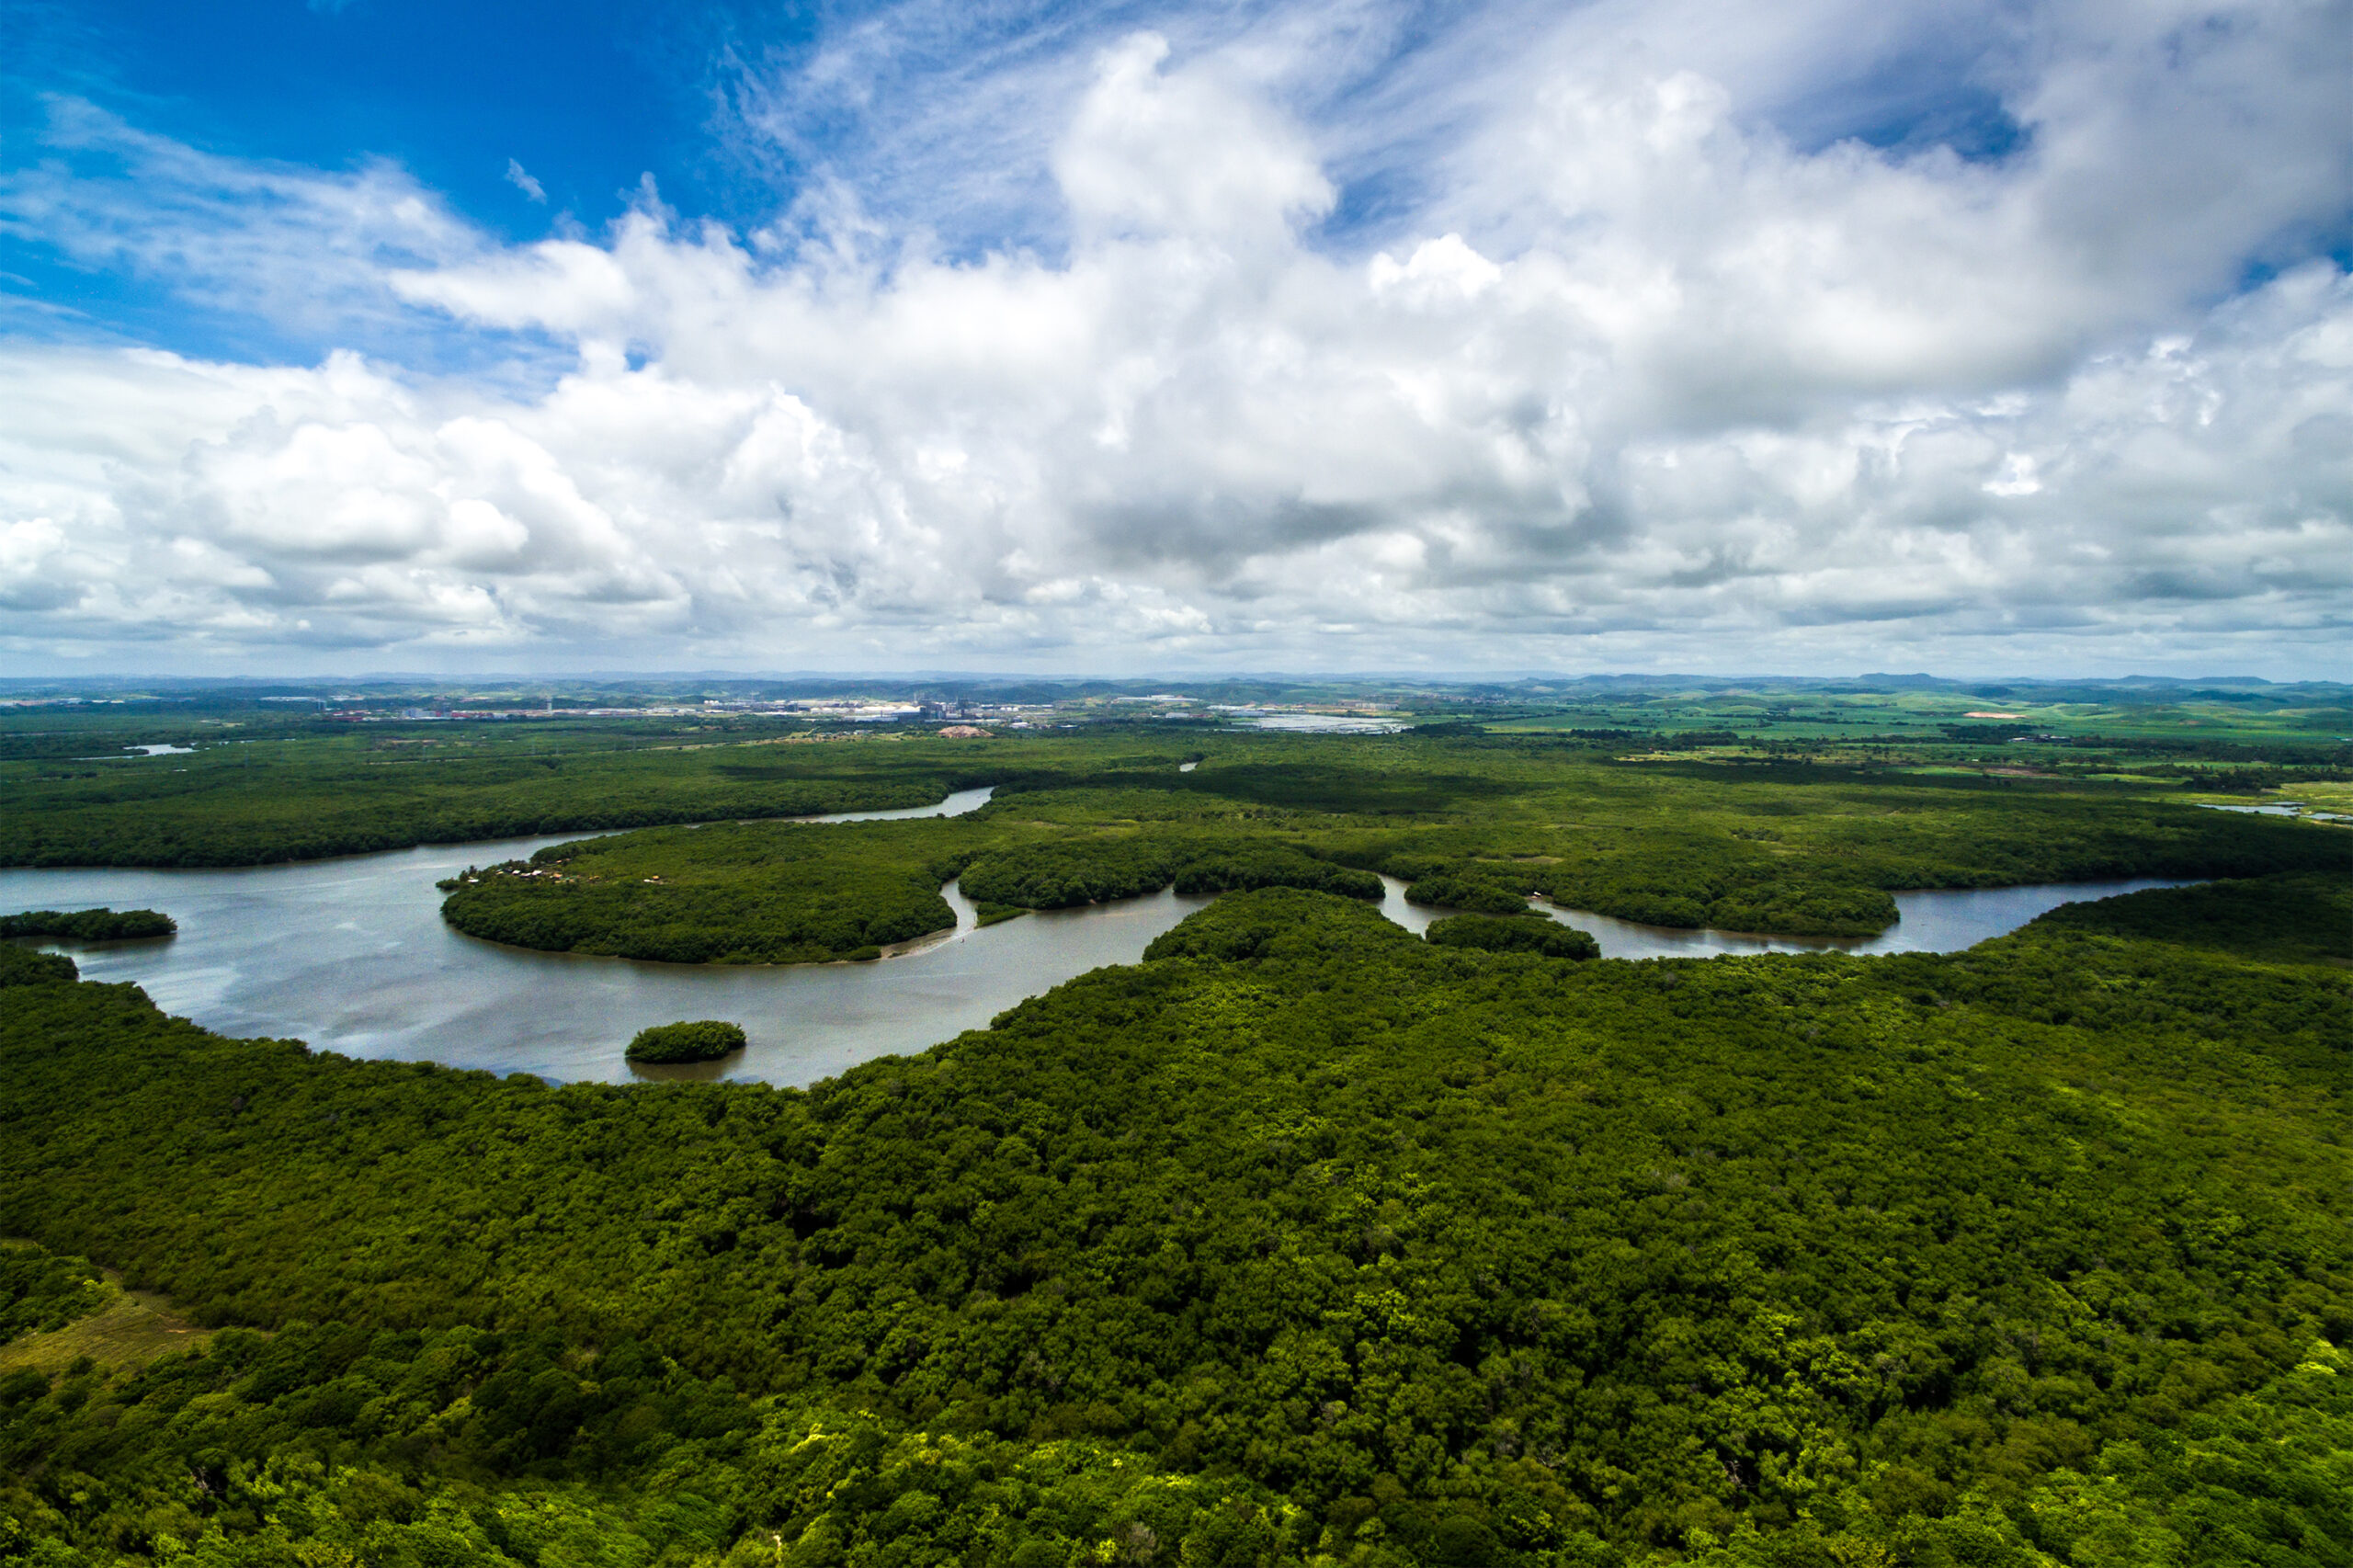 The Amazon is a place to be enjoyed. What would be the meaning of the Amazon rainforest, if not to get involved in it and what it offers - respecting and preserving space, of course.